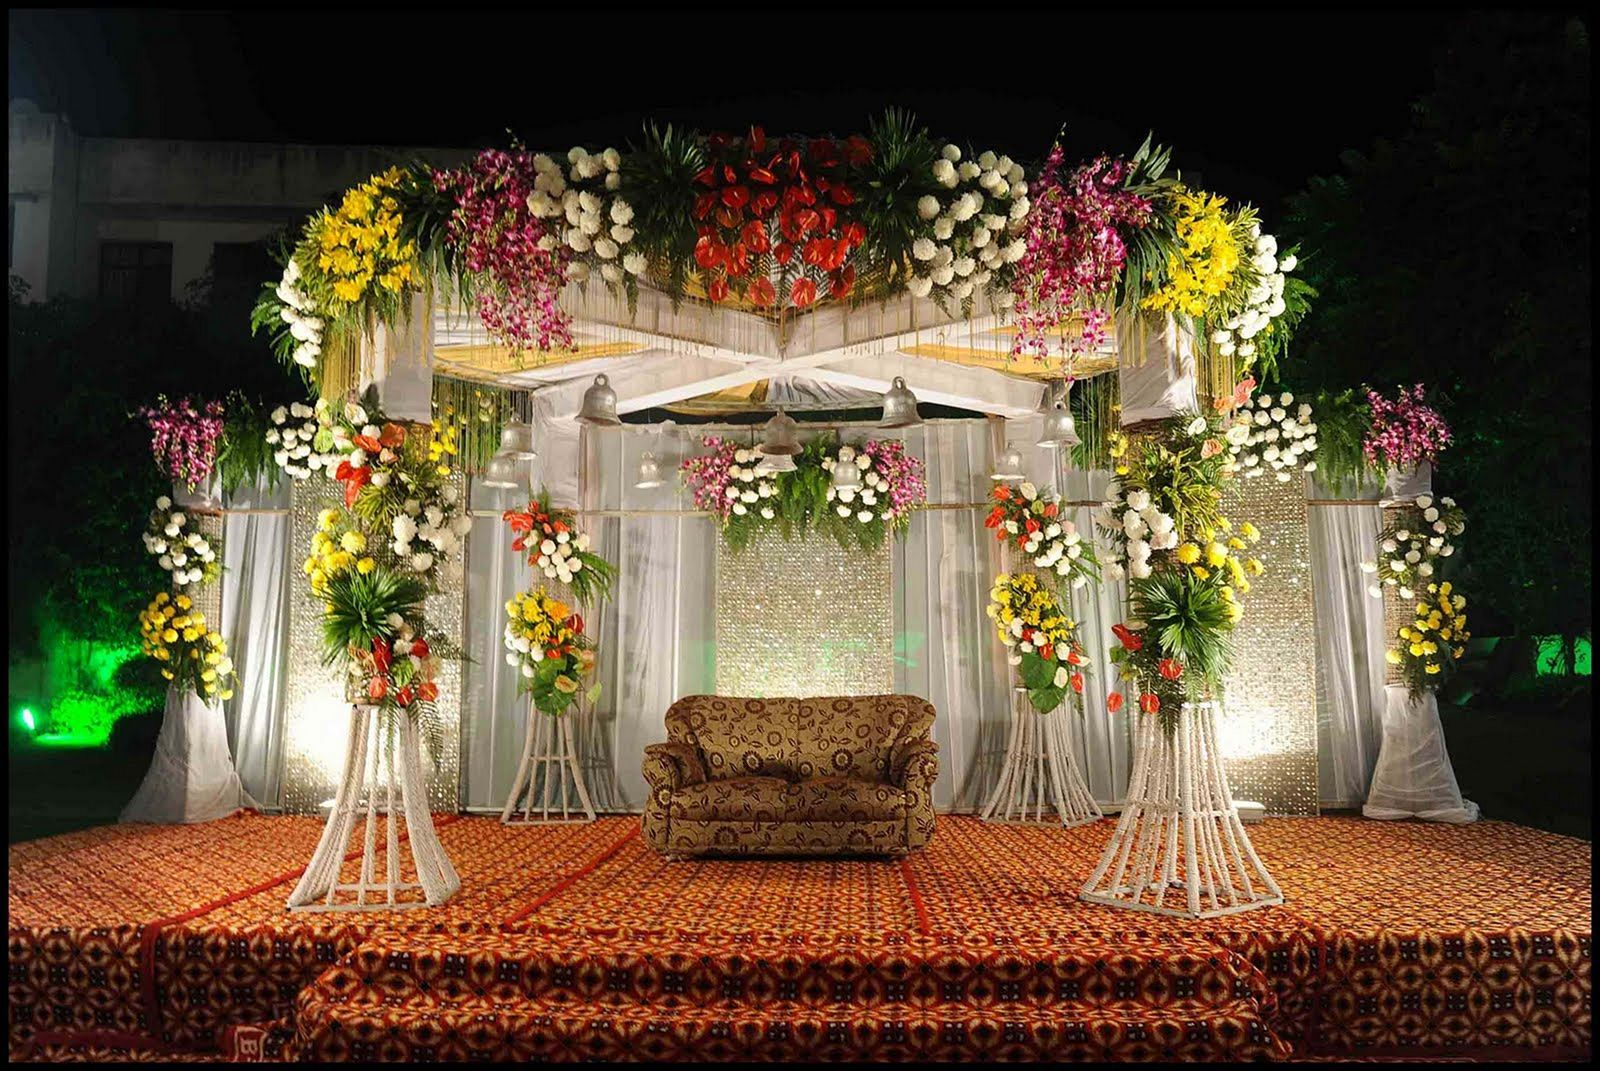 20 Gorgeous Wedding Party Decorating Ideas On A Budget Outdoor Wedding Decorations Wedding Stage Decorations Wedding Flower Decorations